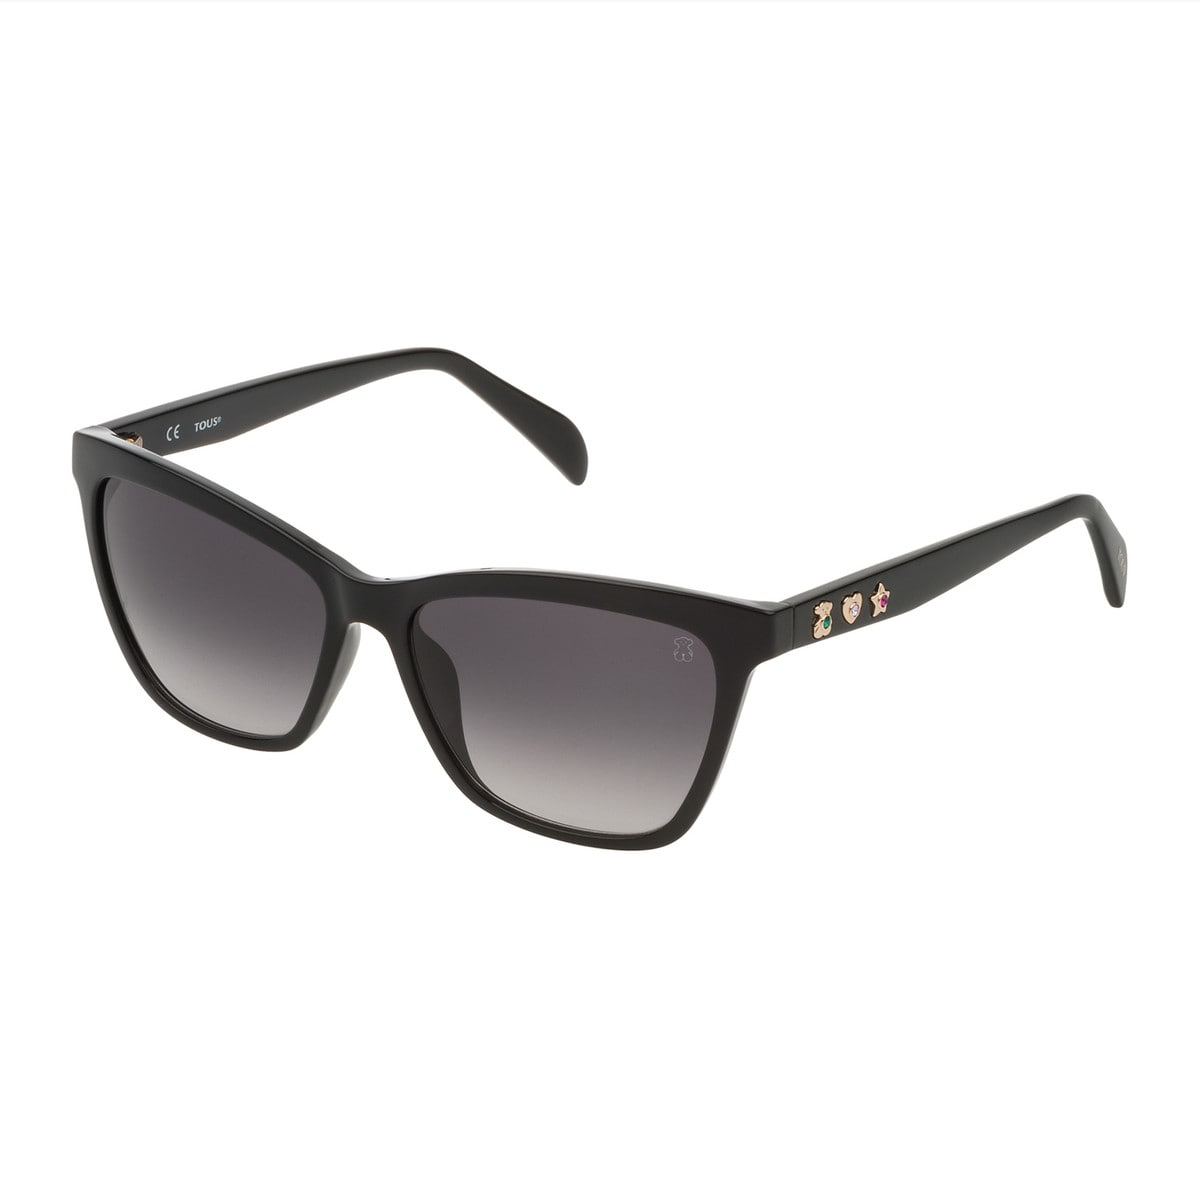 Black Three Motives Squared Sunglasses